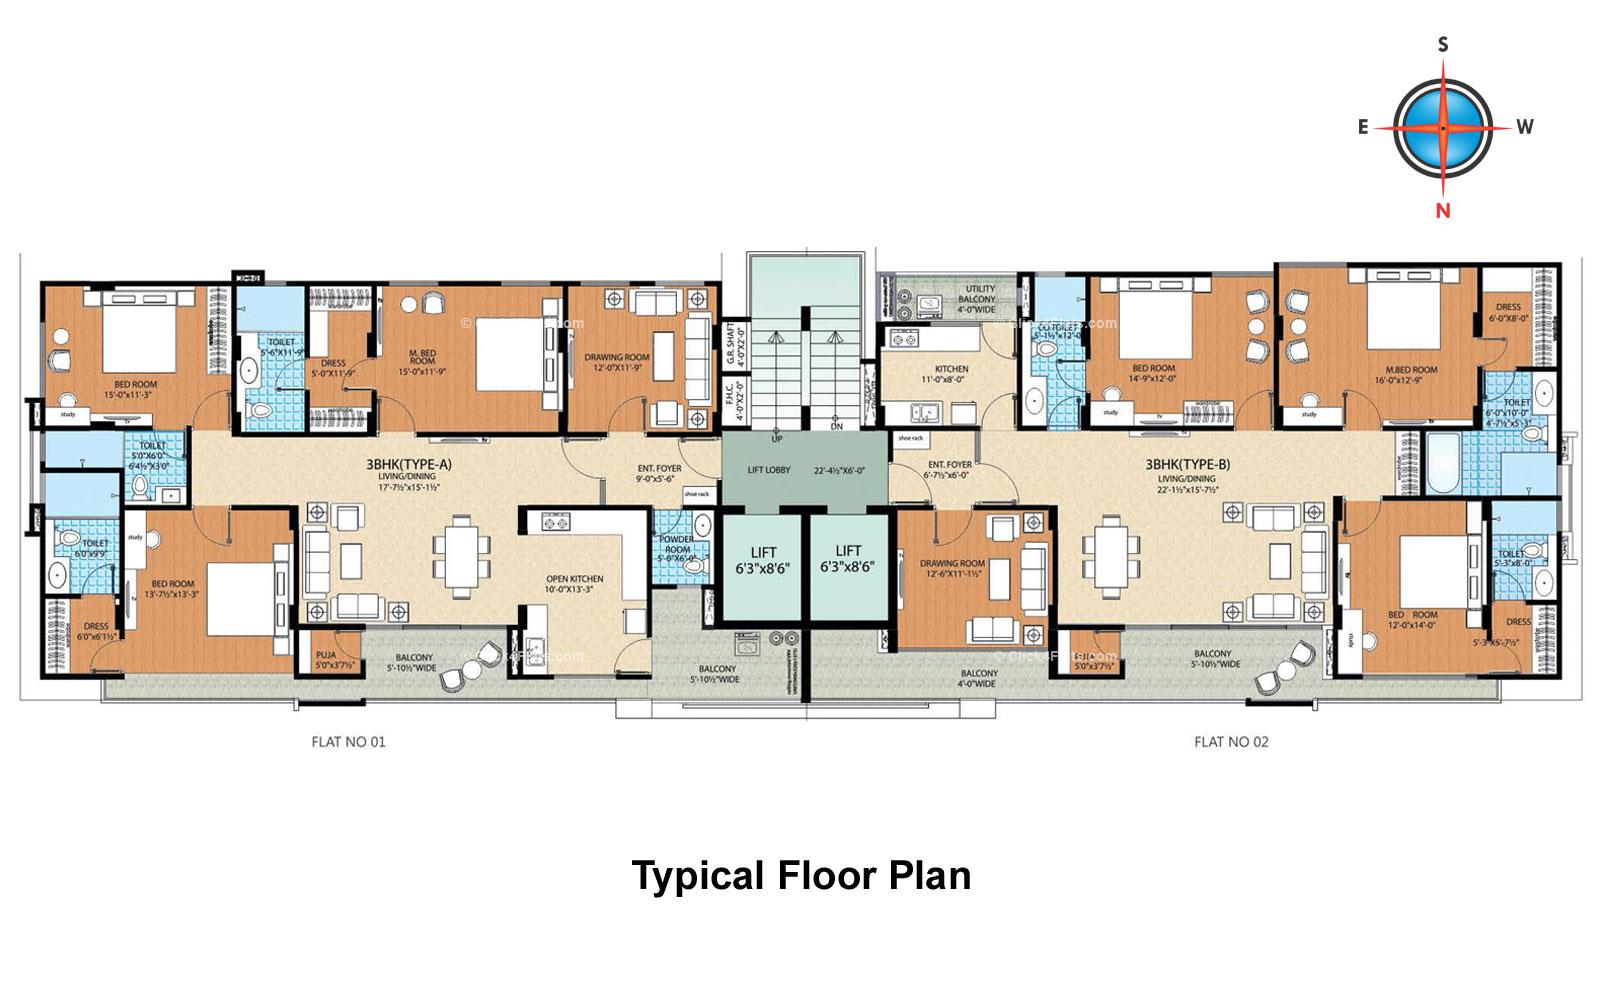 5th Avenue Typical Floor Plan